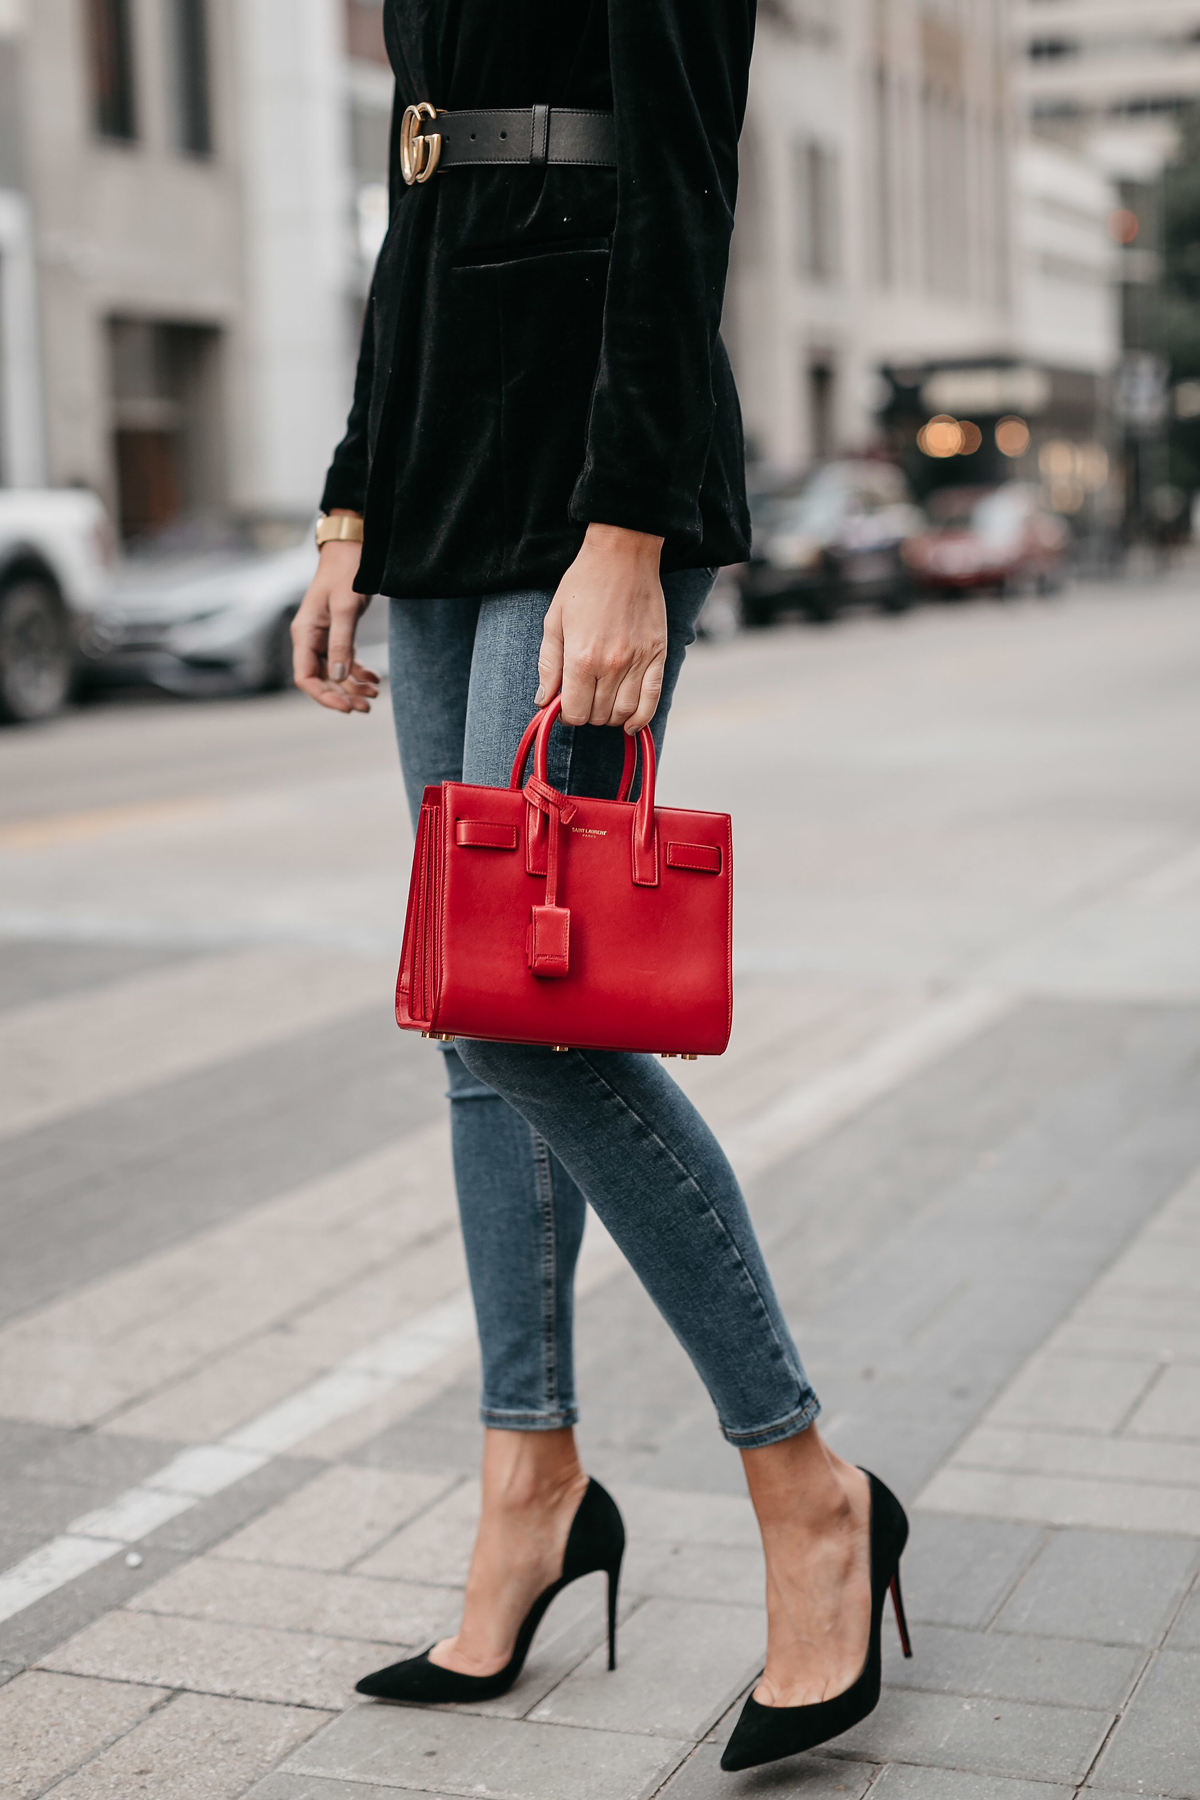 Saint Laurent Red Sac De Jour Black Velvet Blazer Denim Skinny Jeans Christian Louboutin Black Pumps Fashion Jackson Dallas Blogger Fashion Blogger Street Style